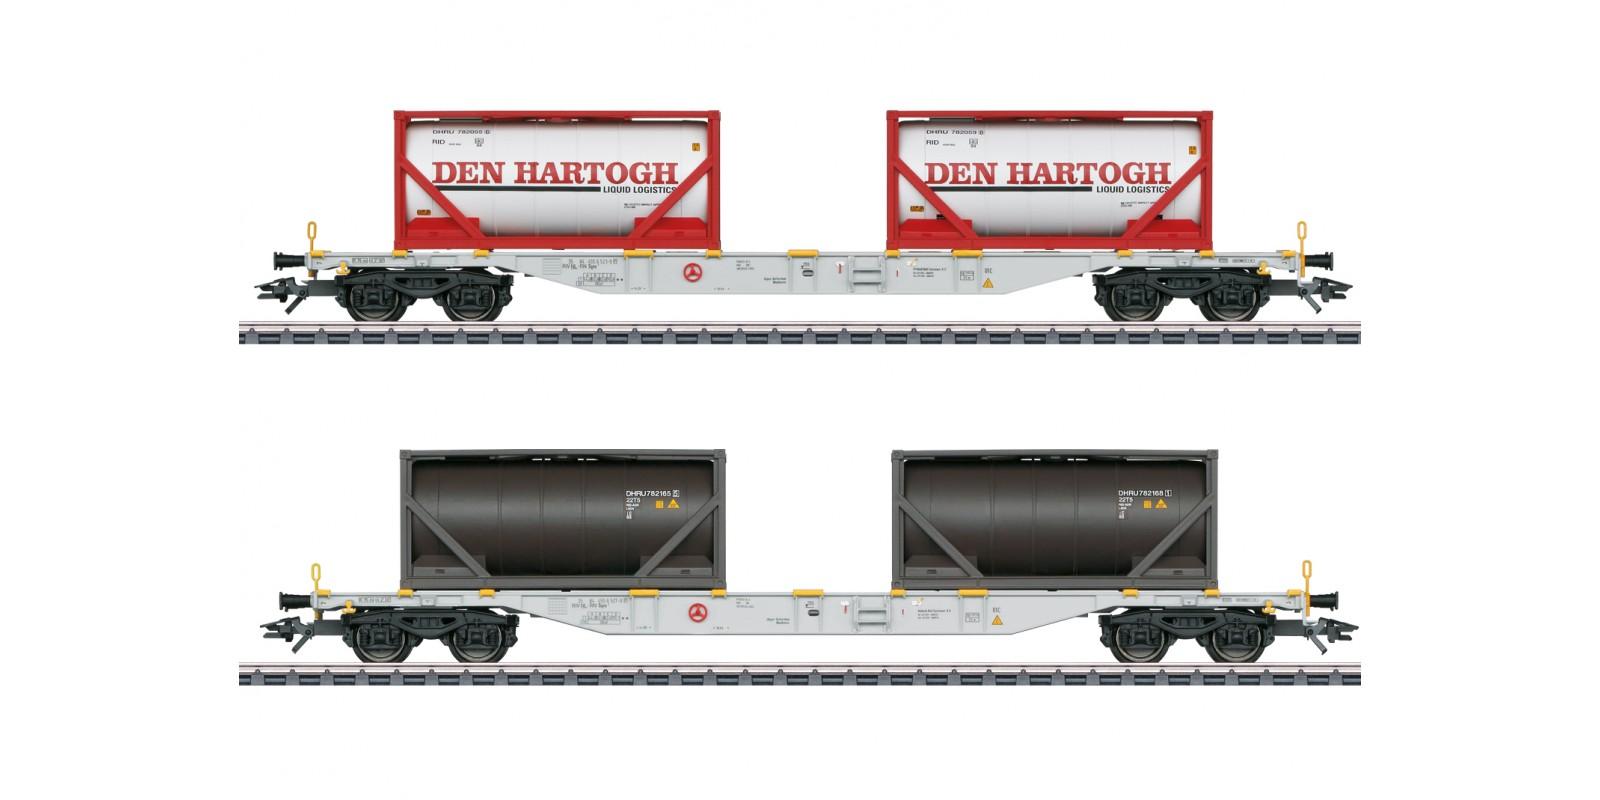 047137 Type Sgns Container Transport Car Set